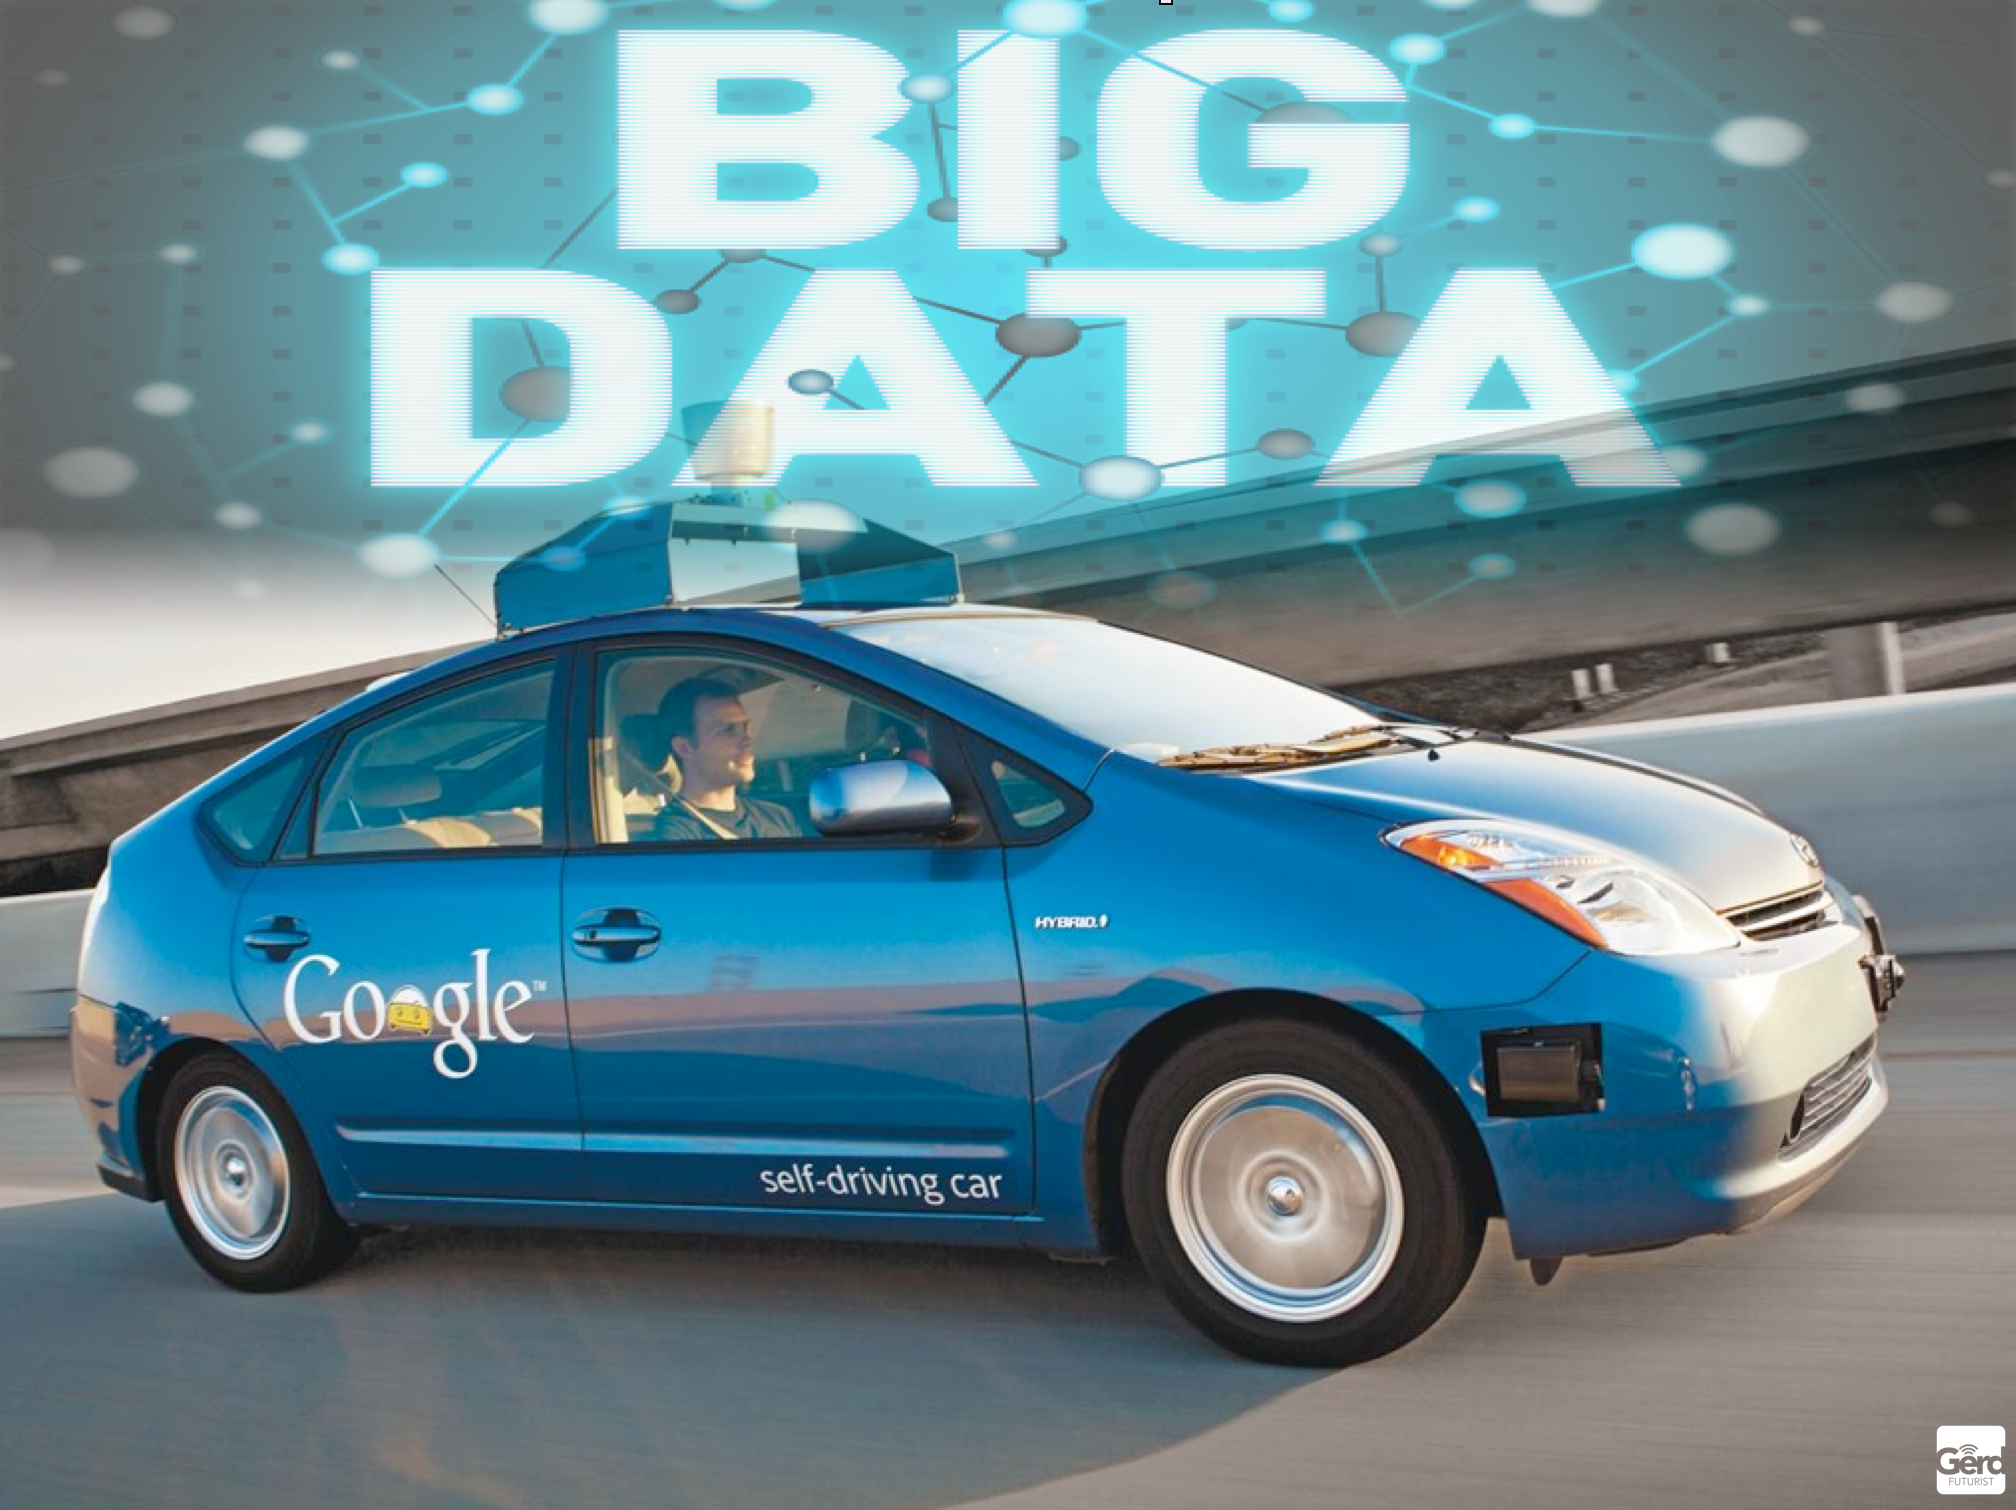 google-big-data-car-gerd